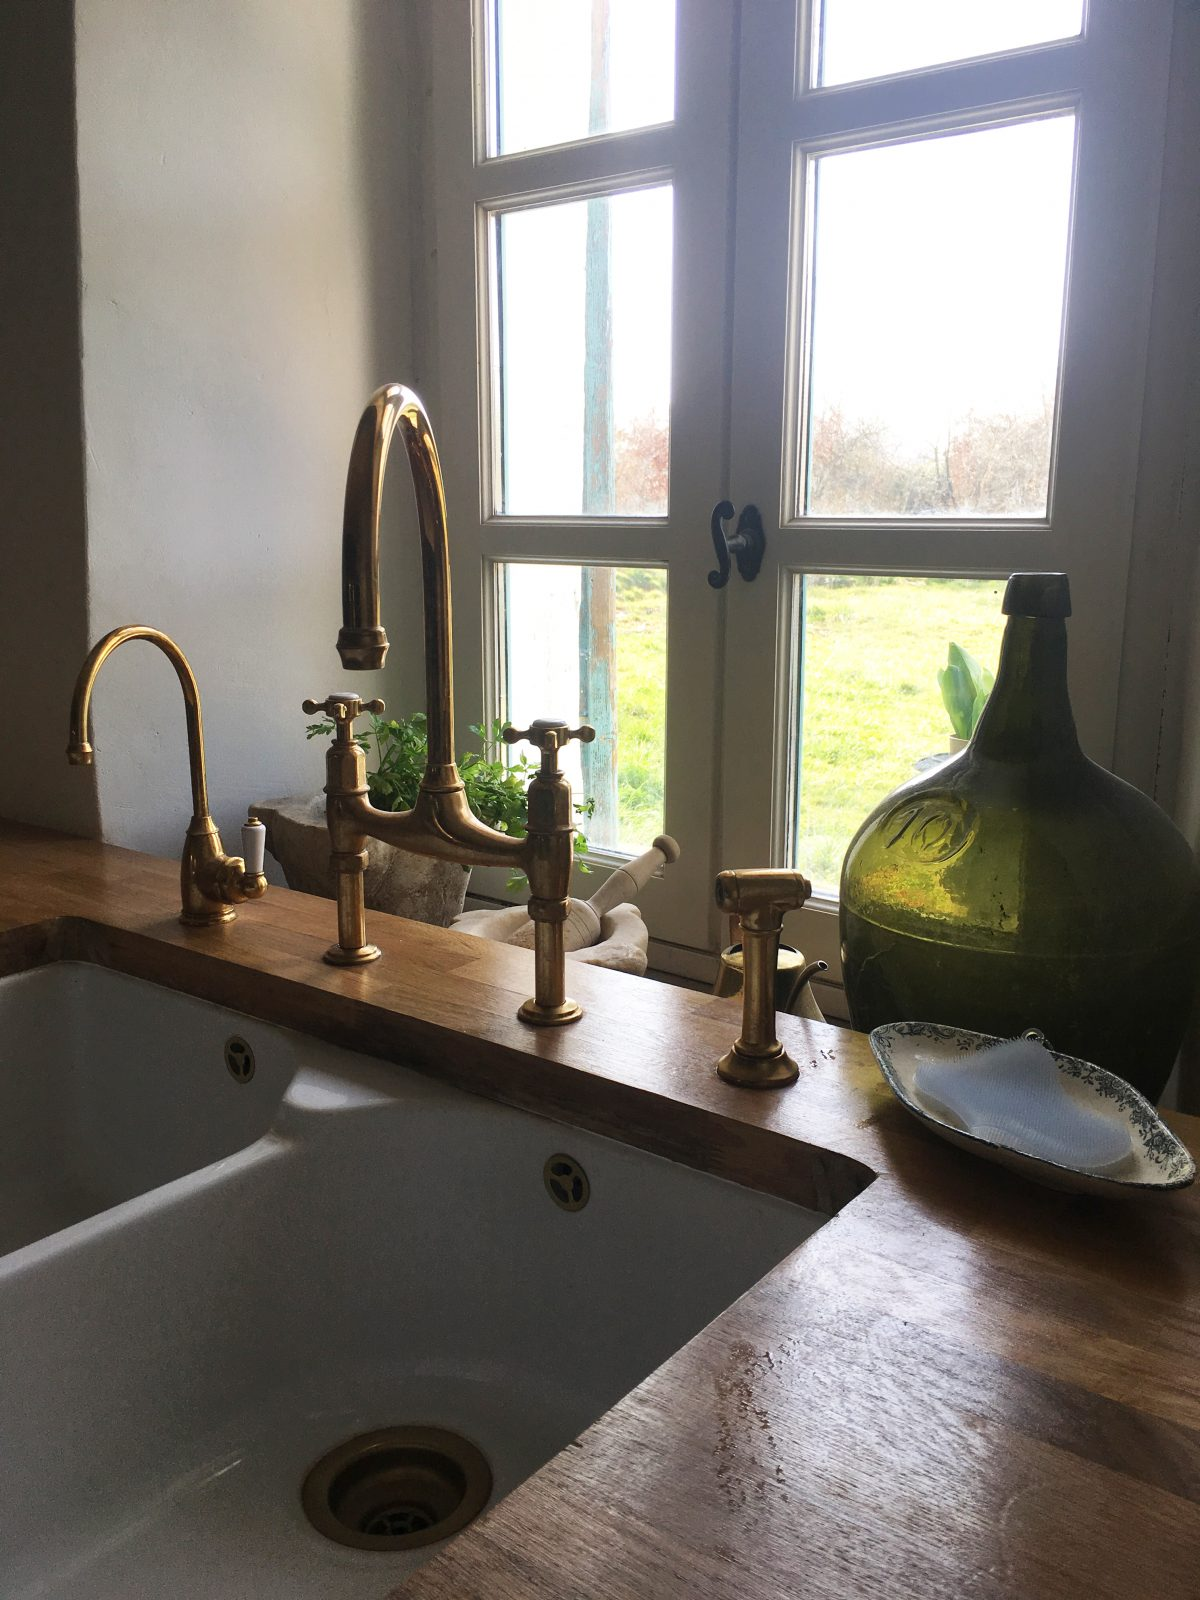 A deVOL Ionian and mini hot tap, both in our exclusive Aged Brass finish - made in collaboration with Perrin & Rowe.